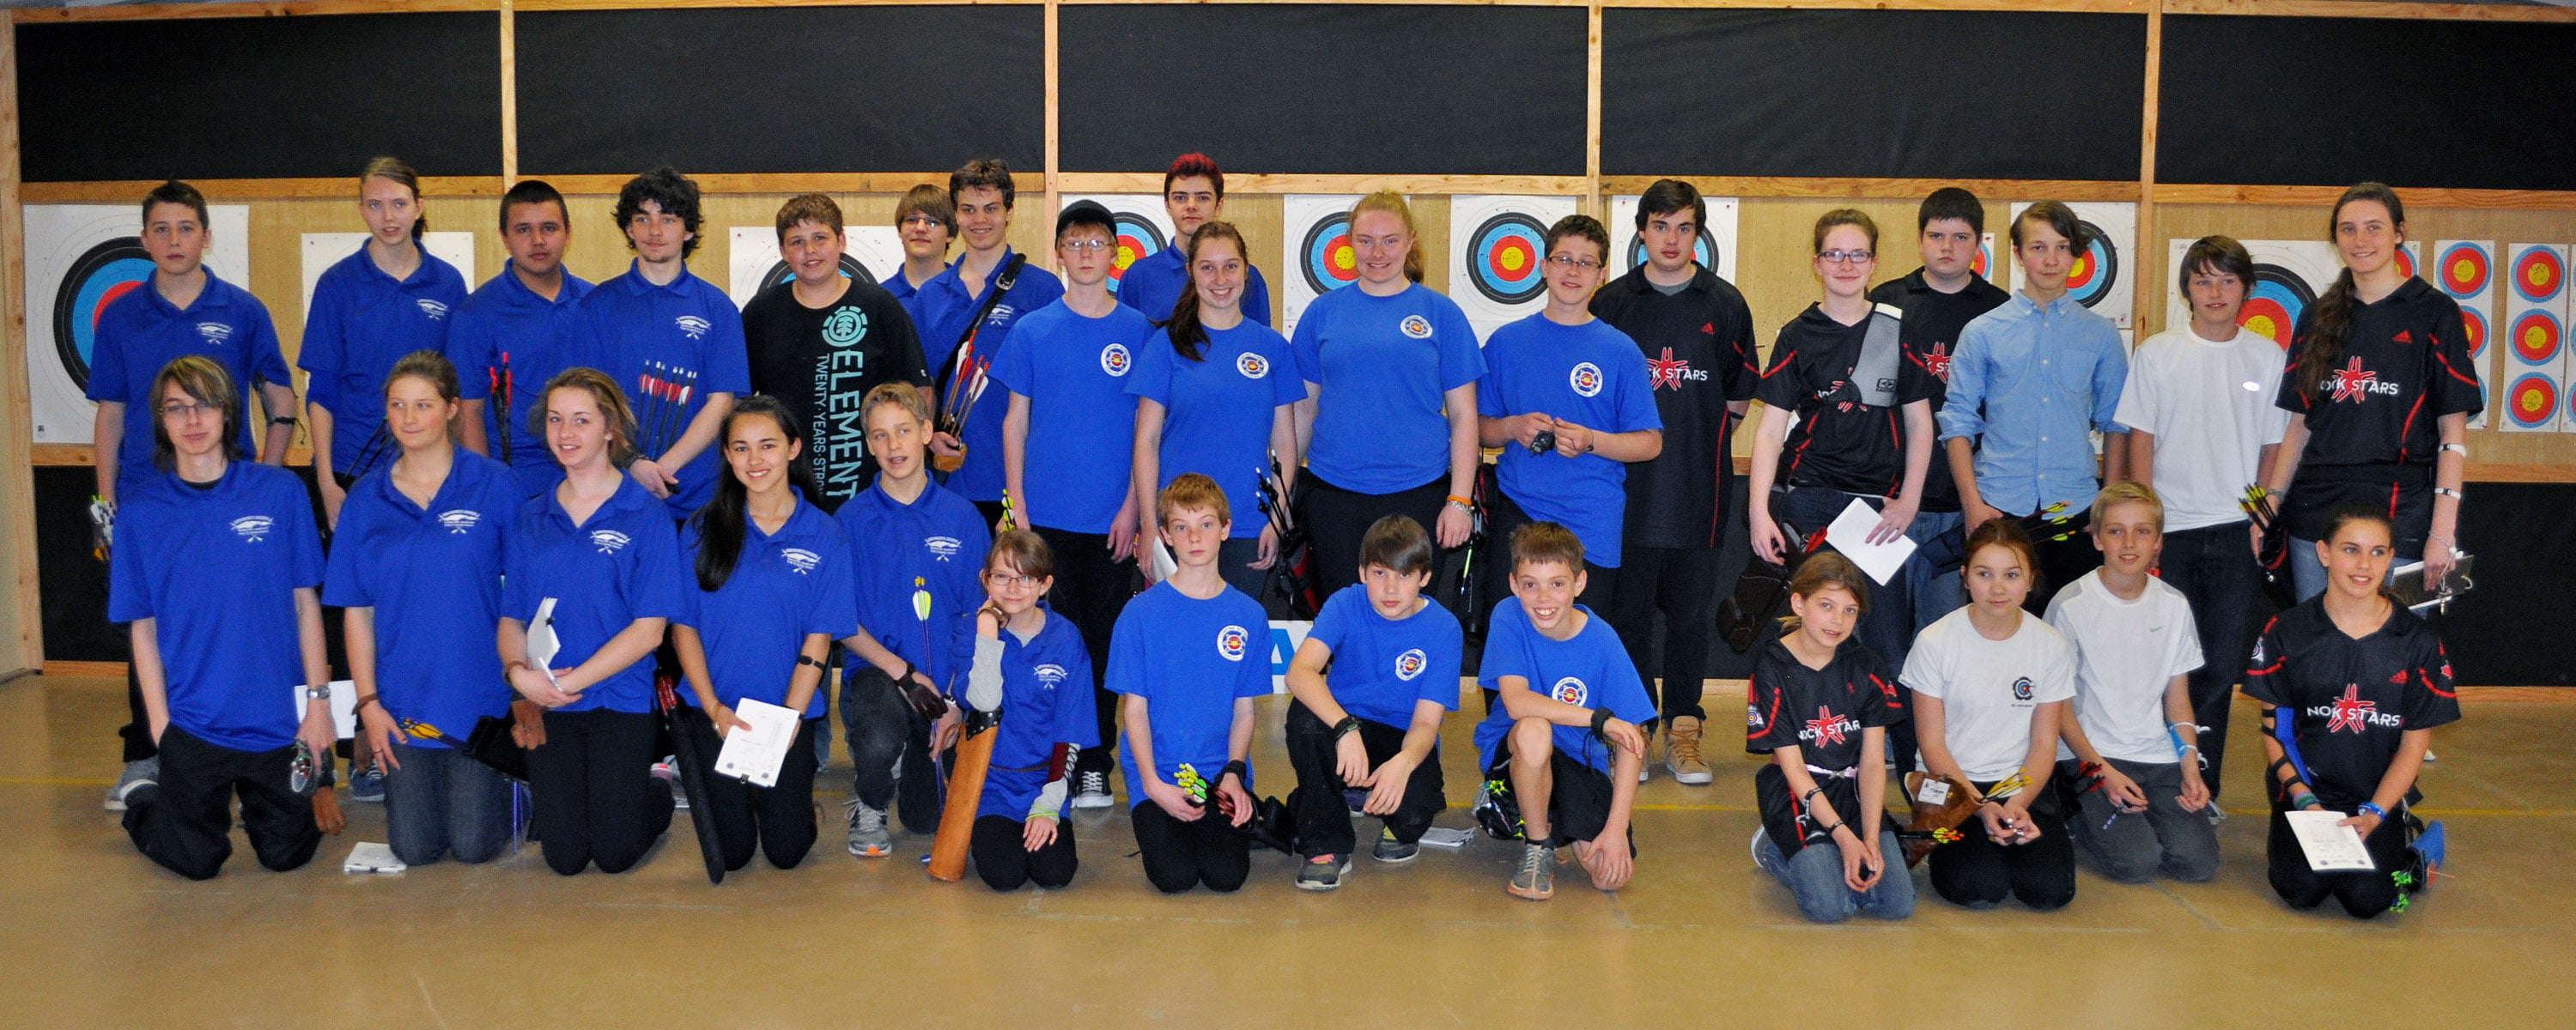 2014 JOP Indoor Championships JOP Indoor Group at Cowichan Bowmen2